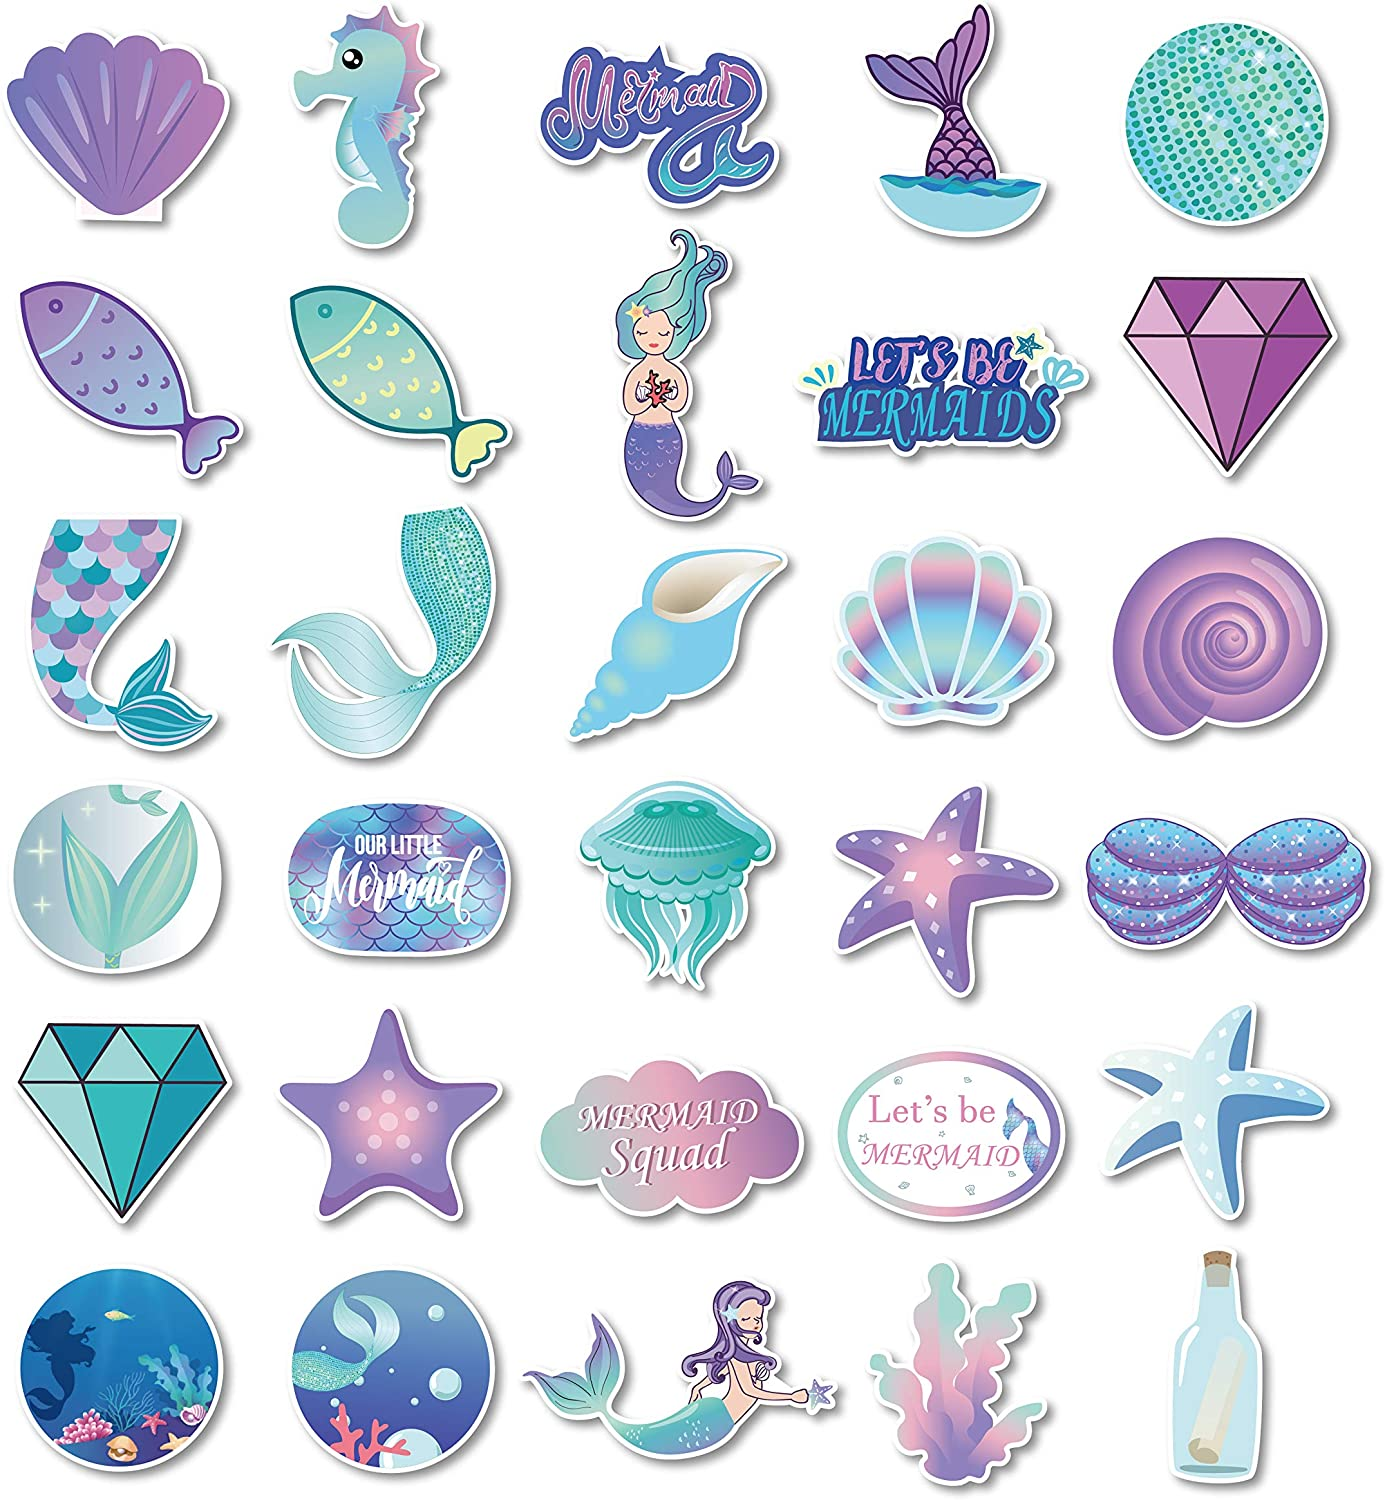 Mermaid Luggage Stickers(30pcs),Mermaid Notebooks Stationery Stickers,Mermaid Laptop Stickers,Mermaid Skateboard Stickers,Mermaid PVC Waterproof Stickers for Kids,Adults,Cars,Motorcycles,Bicycles